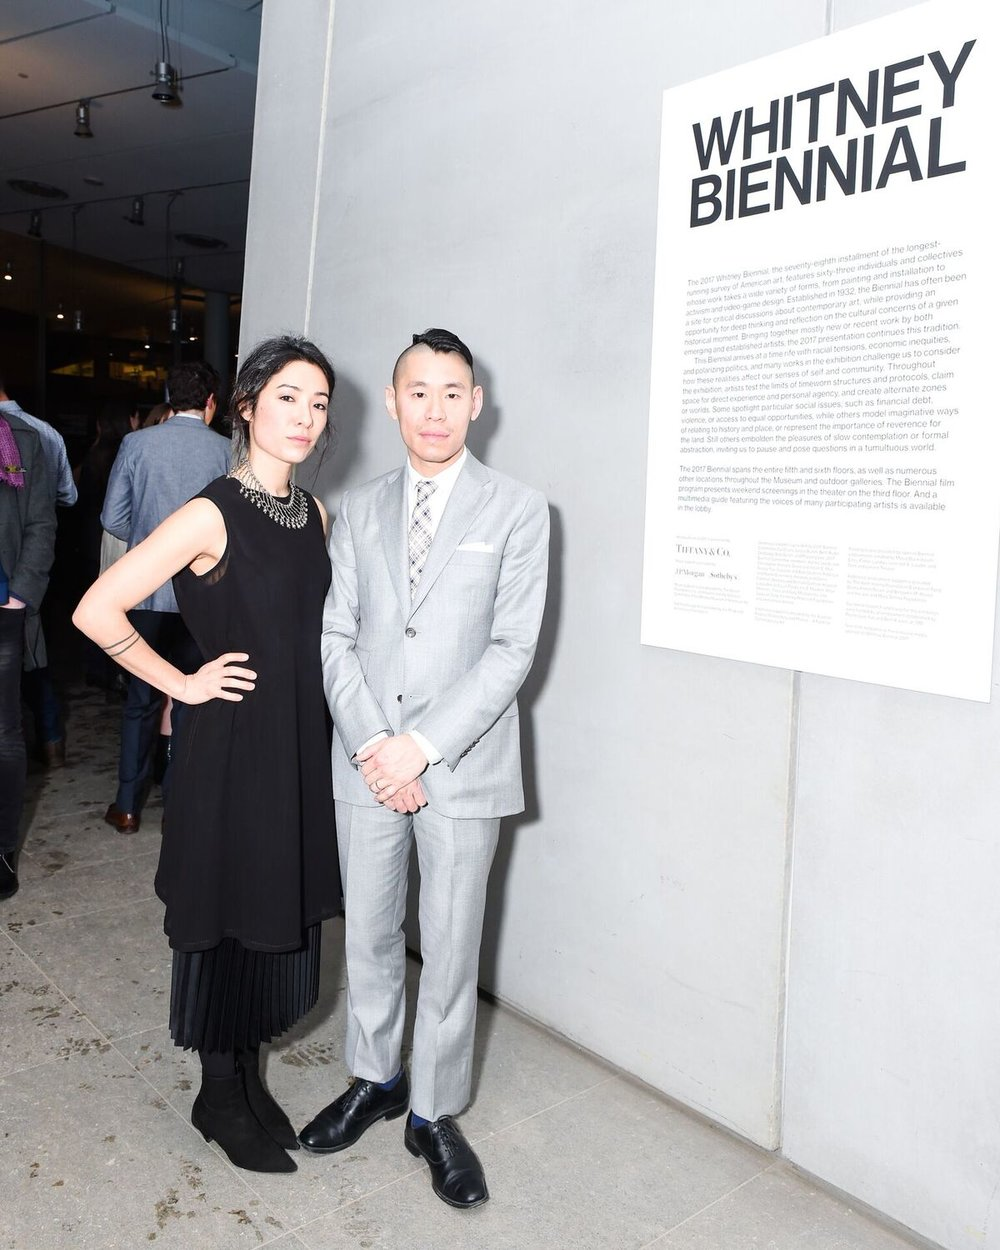 Whitney Biennial curators Mia Locks + Christopher Y. Lew